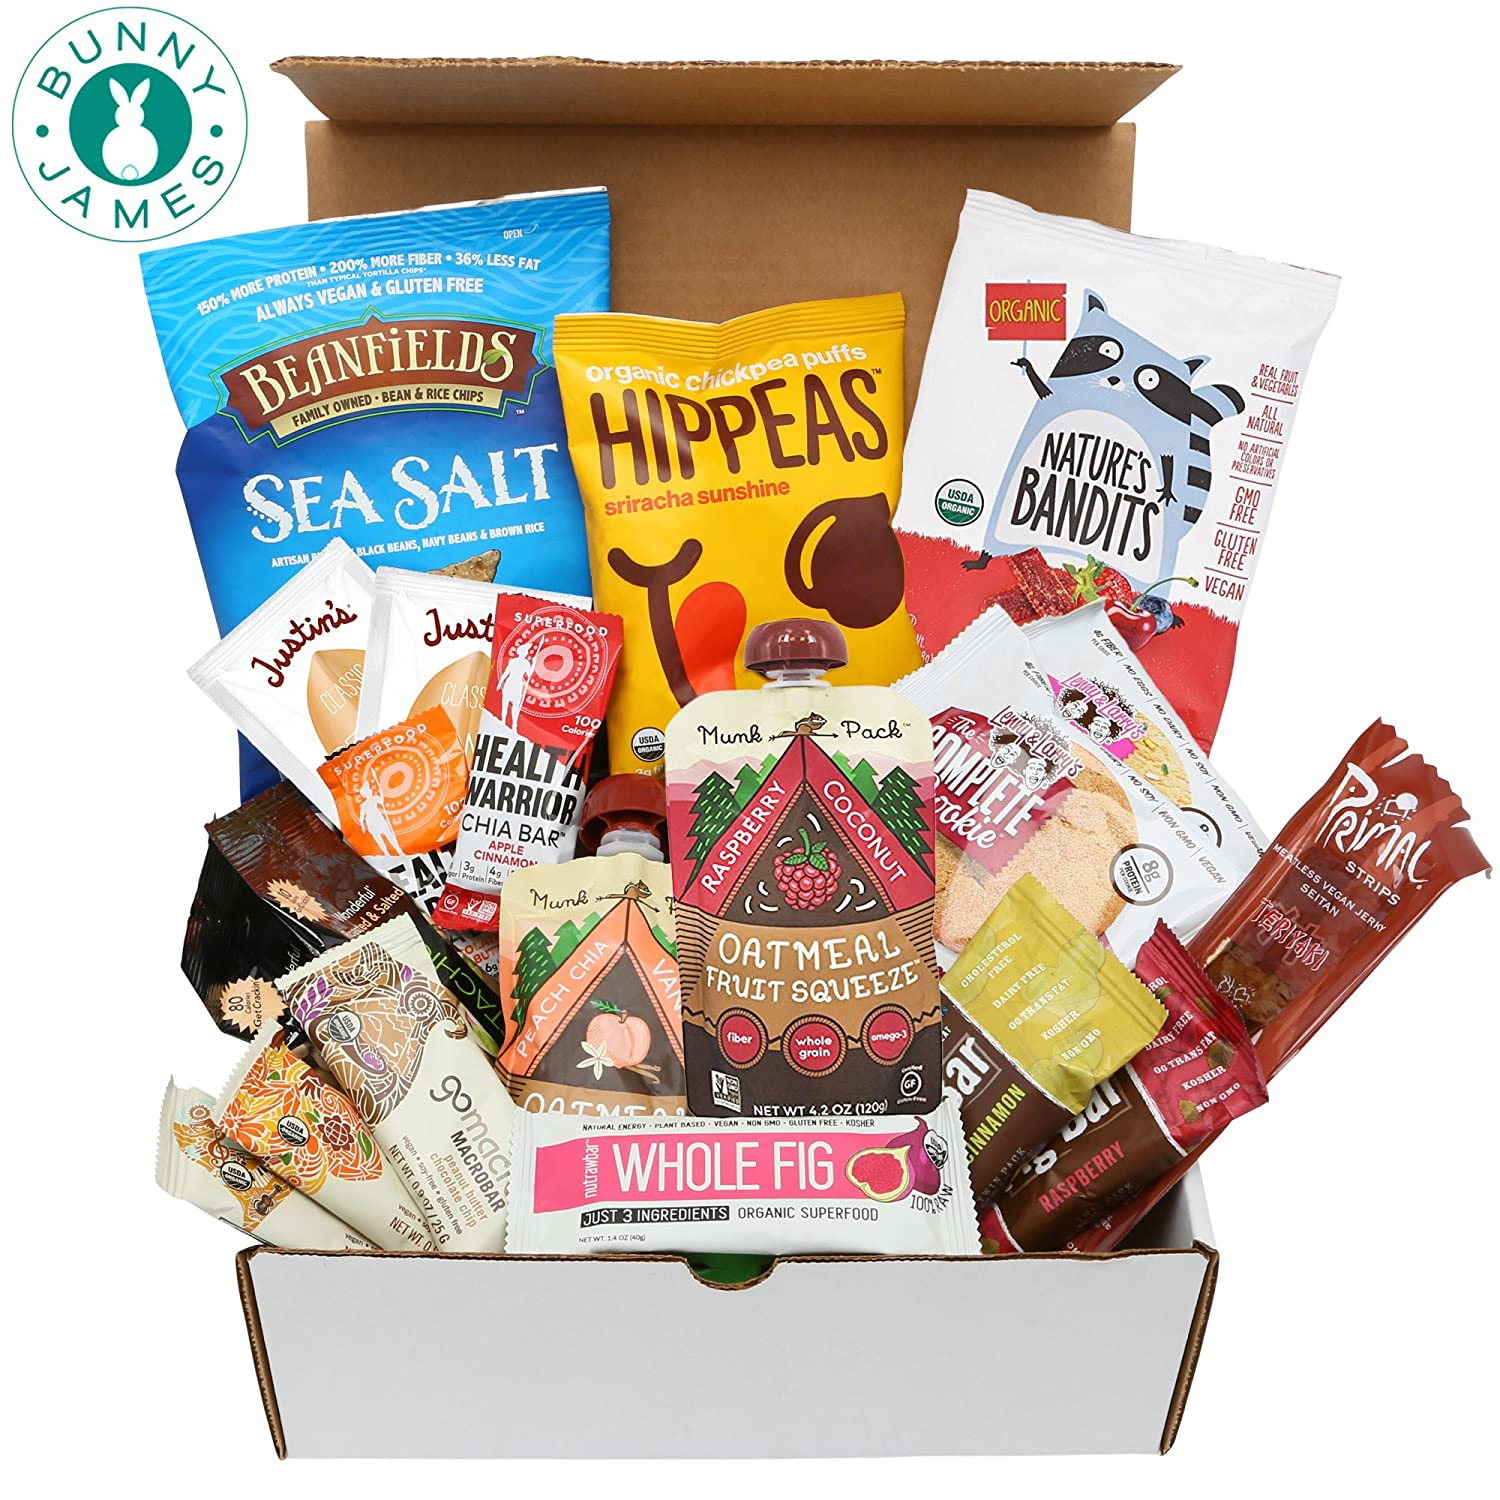 Amazon healthy vegan snacks care package natural organic vegan snacks care package natural organic non gmo vegan protein bars cookies fruit snacks vegan jerky nuts premium vegan assortment gift box negle Image collections